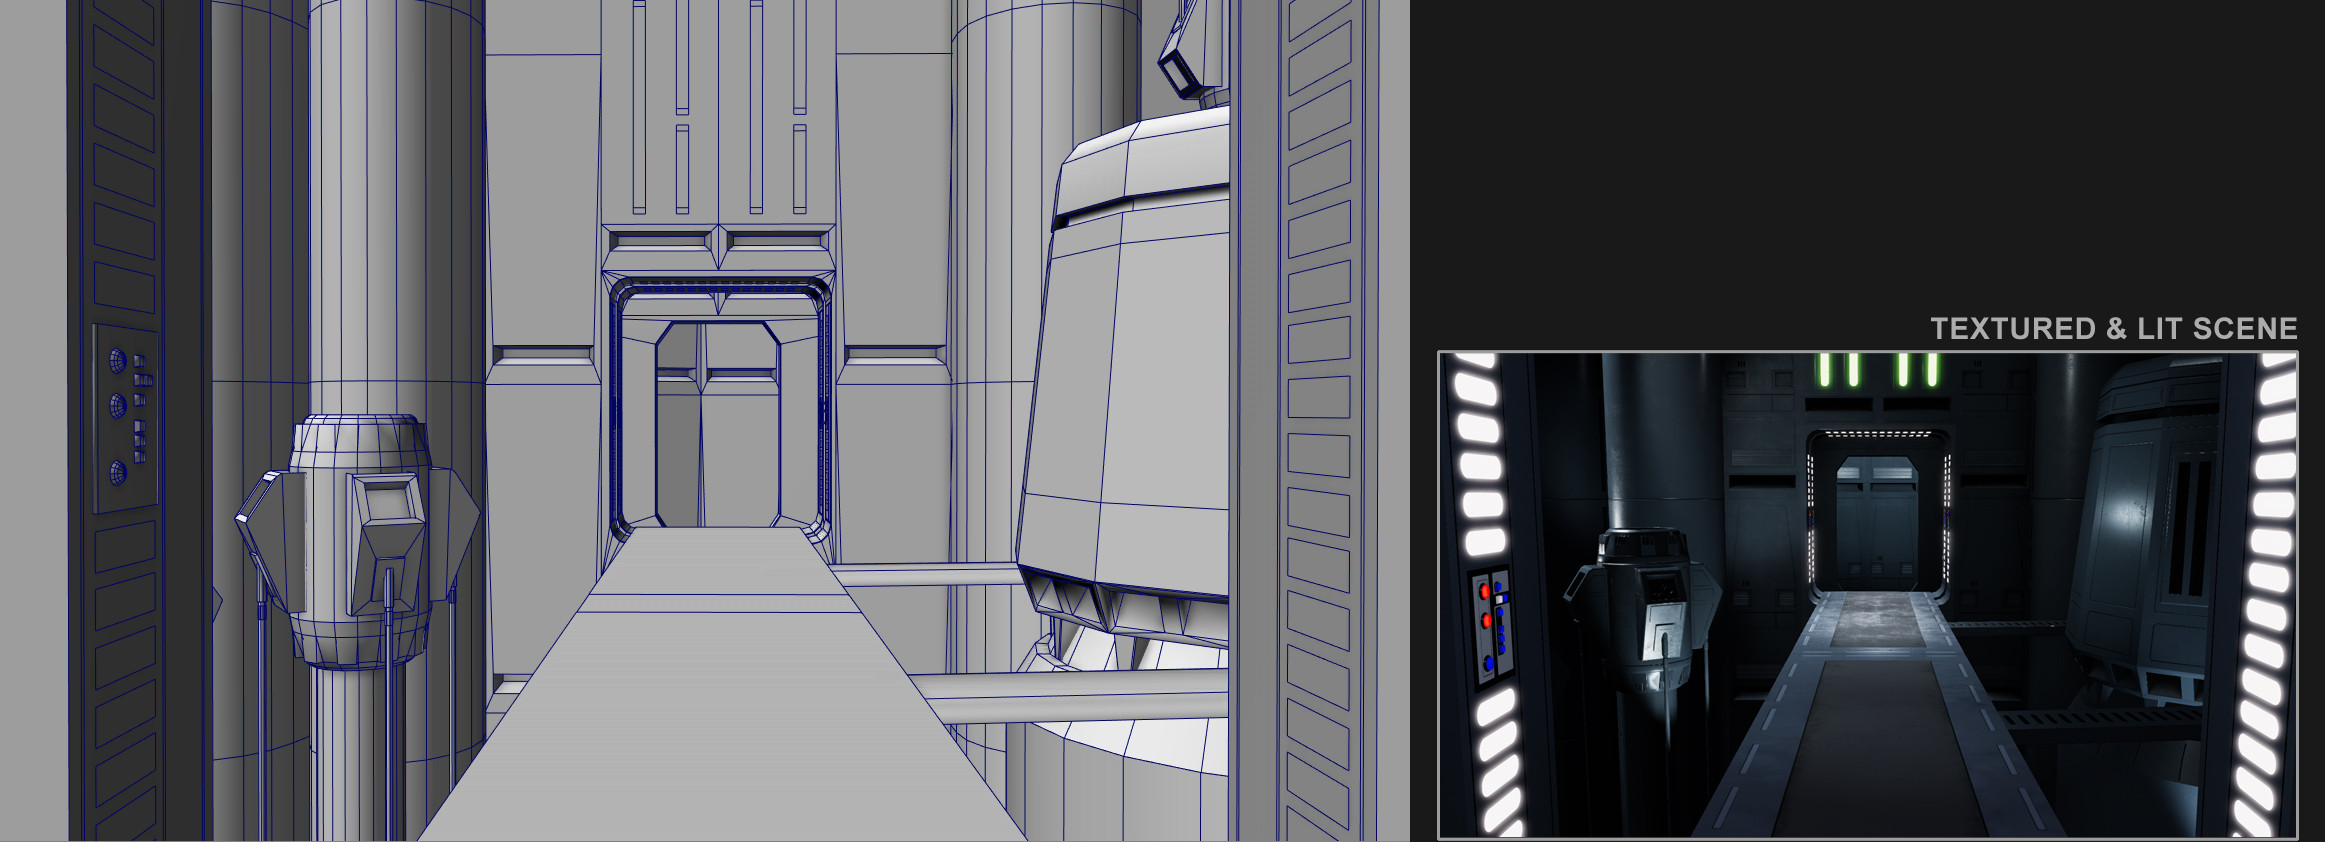 Wireframe on the left, Unity screenshot of the textured and lit geometry on the right.